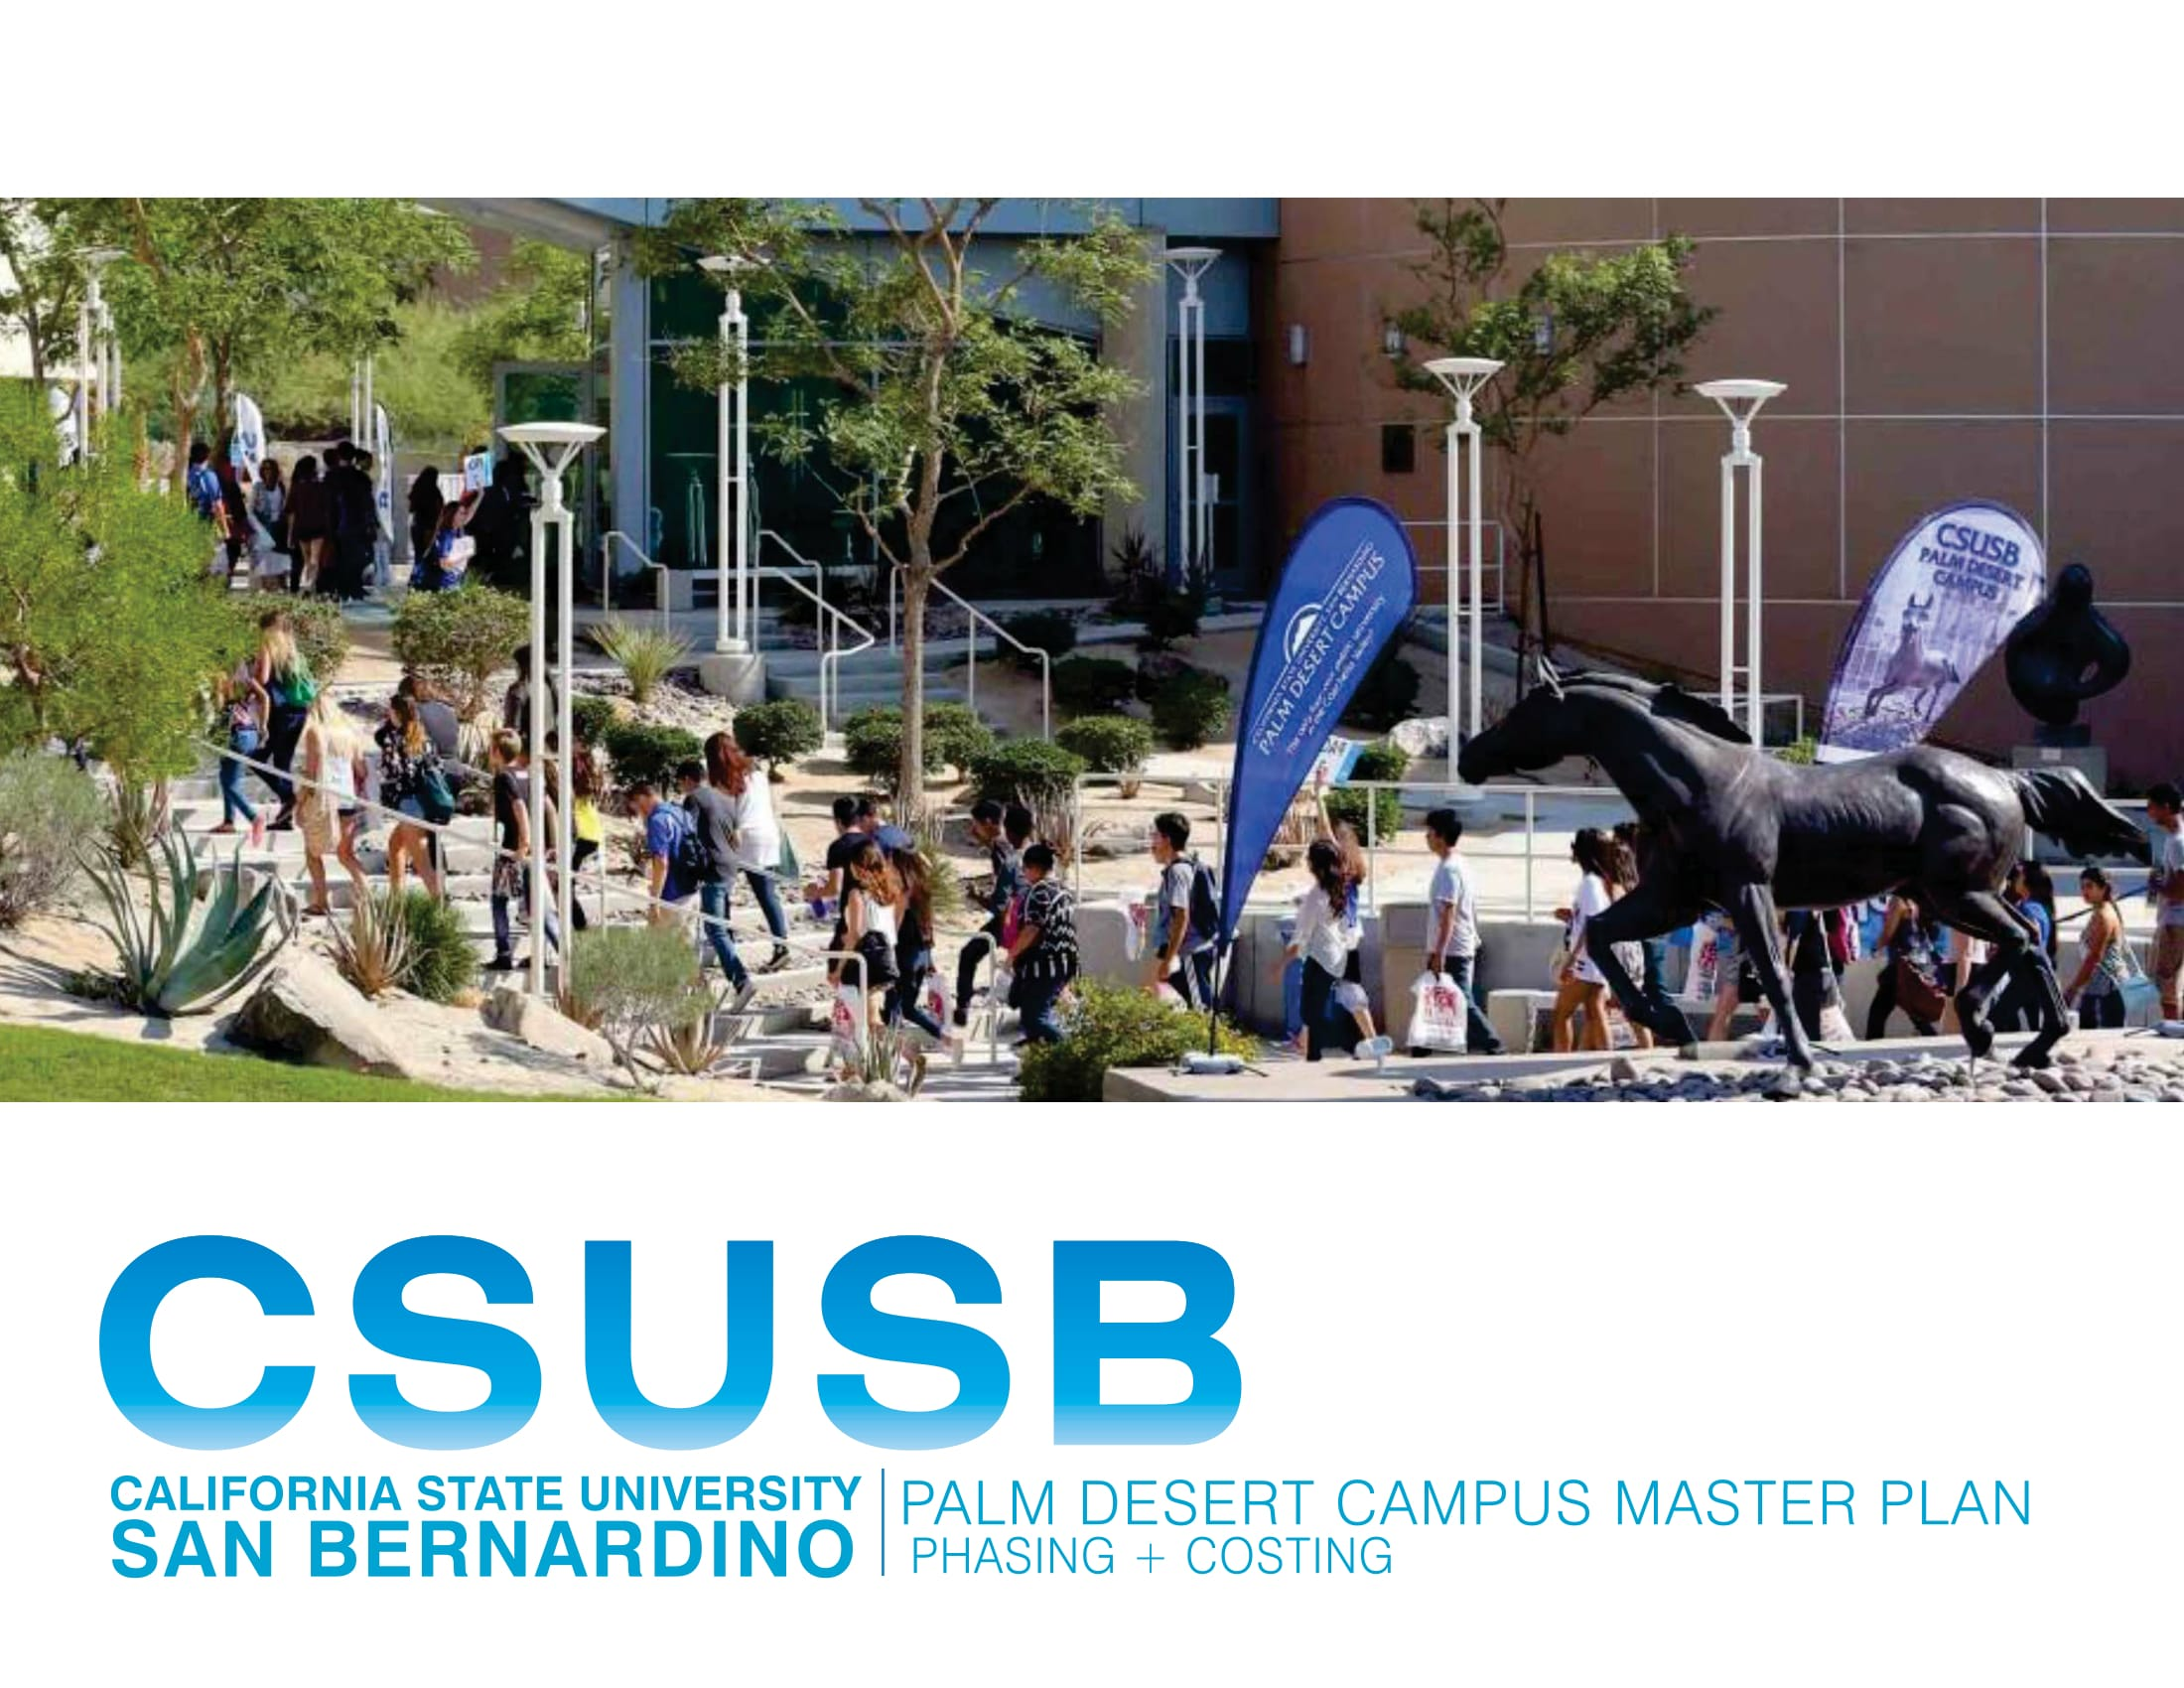 CSUSB PDC Master Plan Phasing and Cost Memo